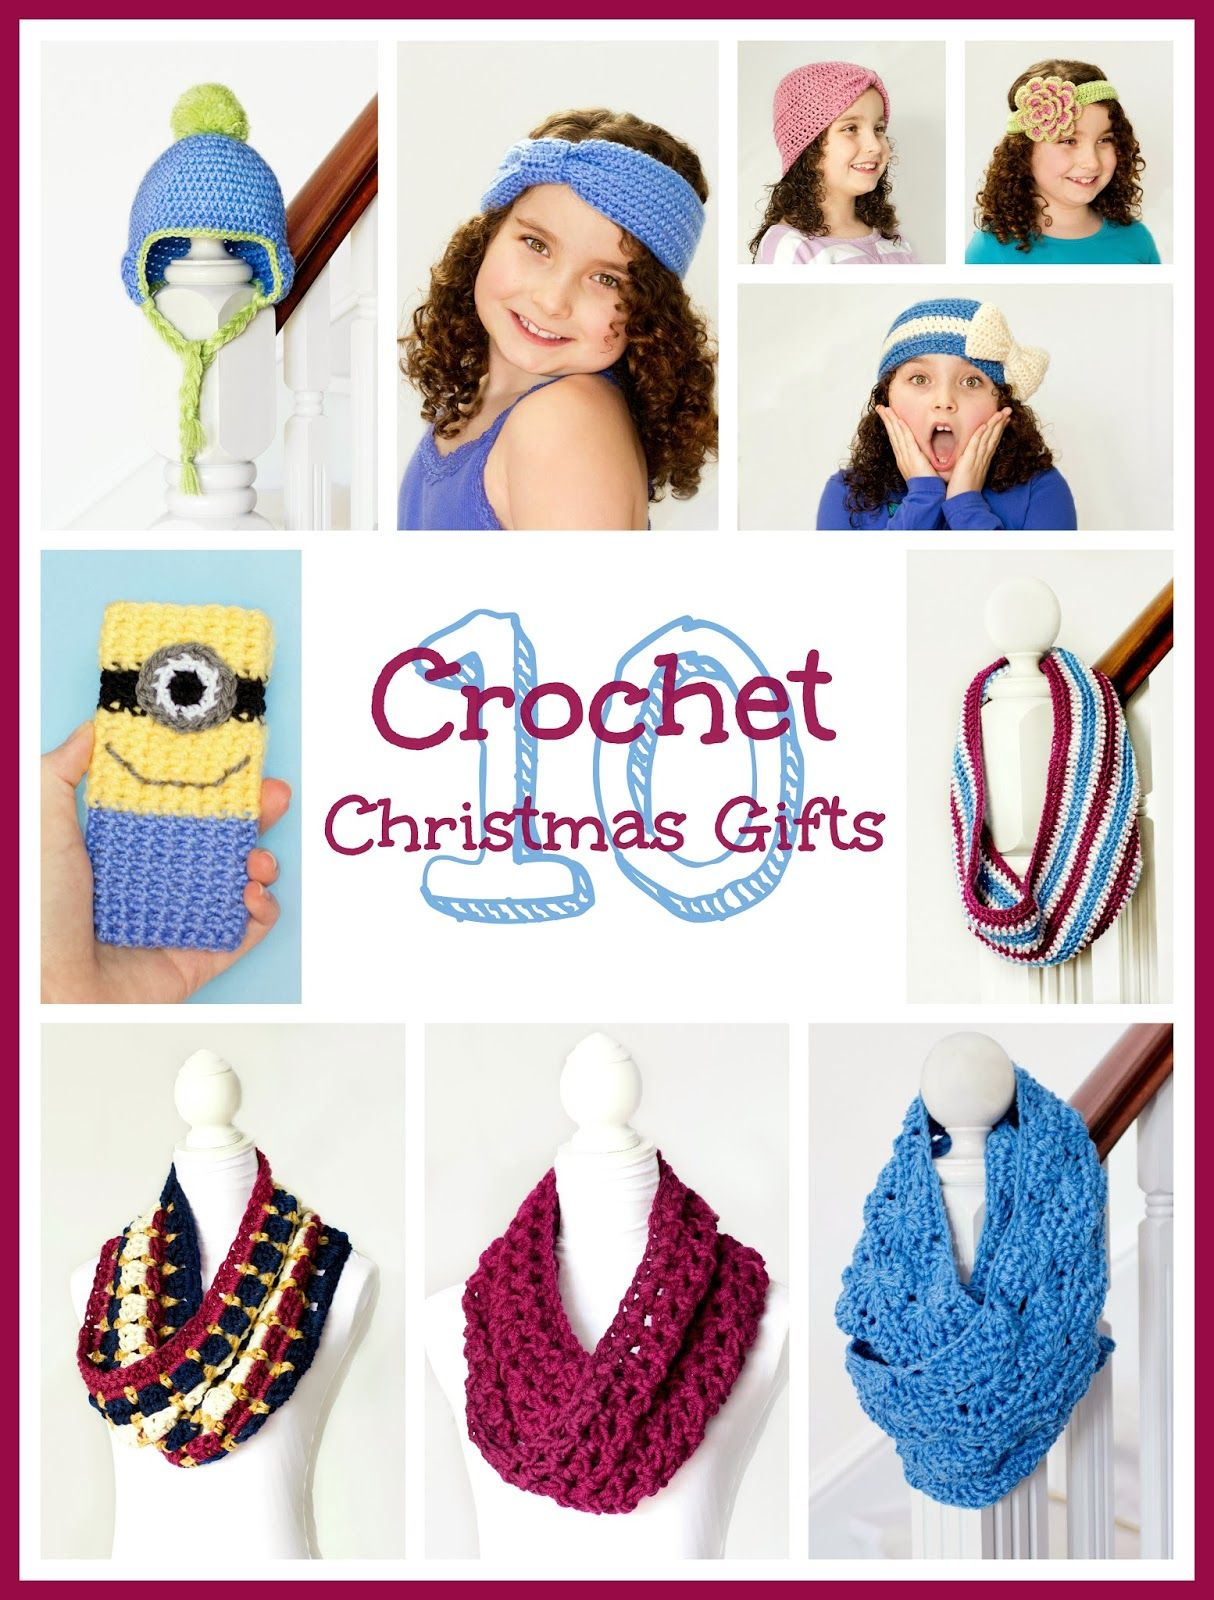 10 Quick & Easy Crochet Christmas Gifts | Crochet christmas gifts ...